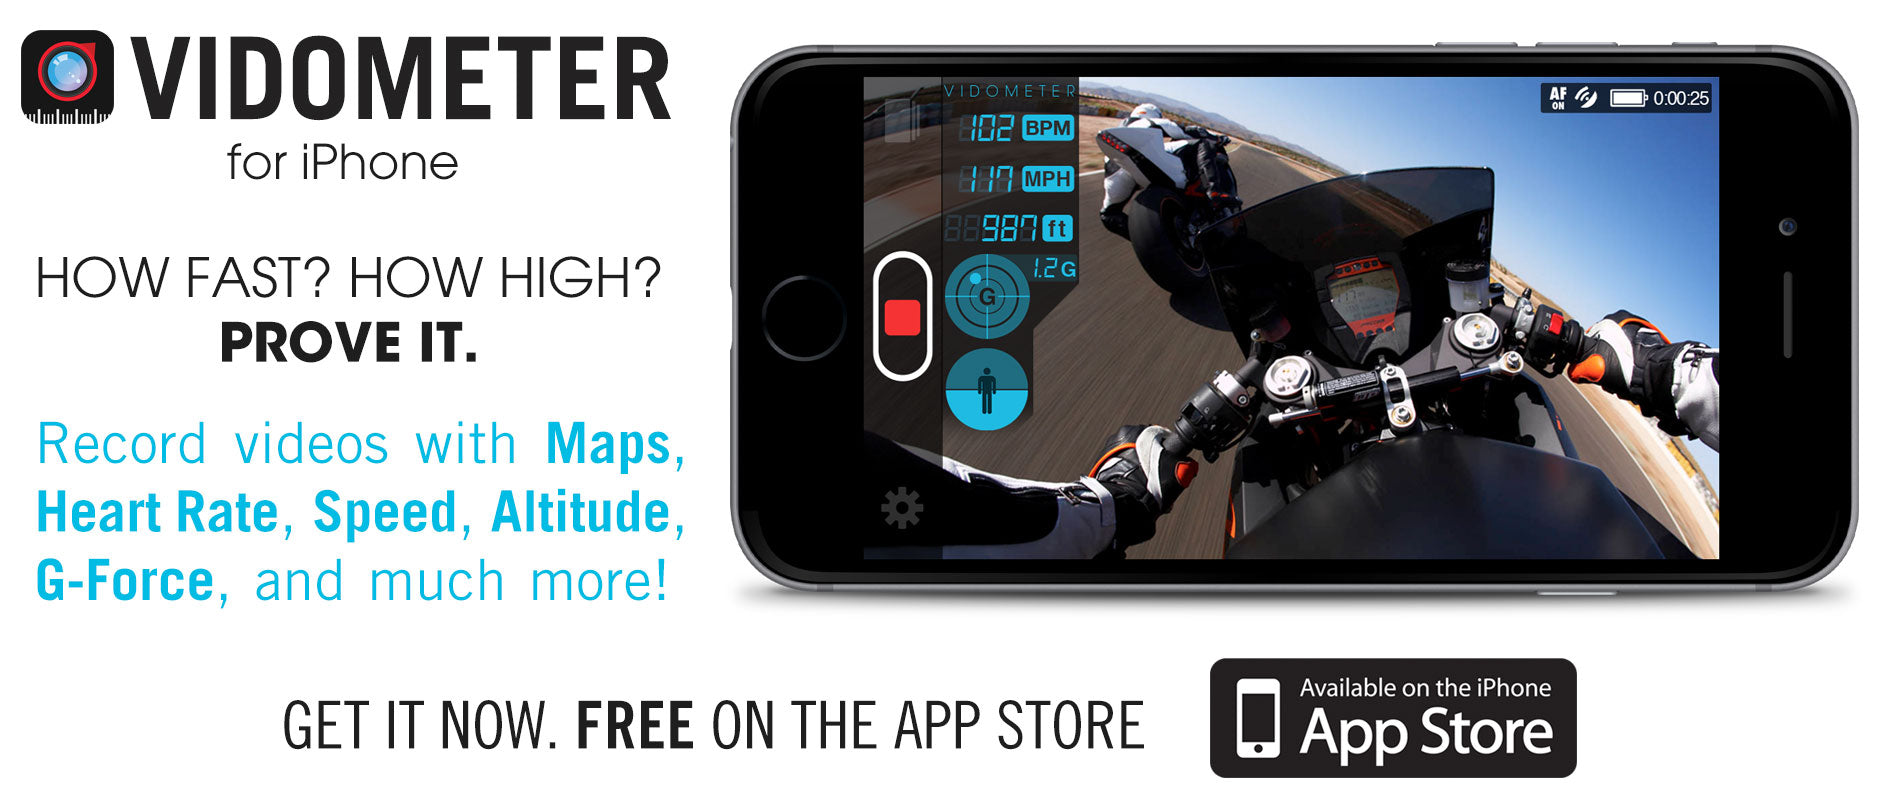 Vidometer for iPhone. How Fast? How High? Prove it. Overlay your Speed, Altitude, G-Force, and more onto your videos in real time